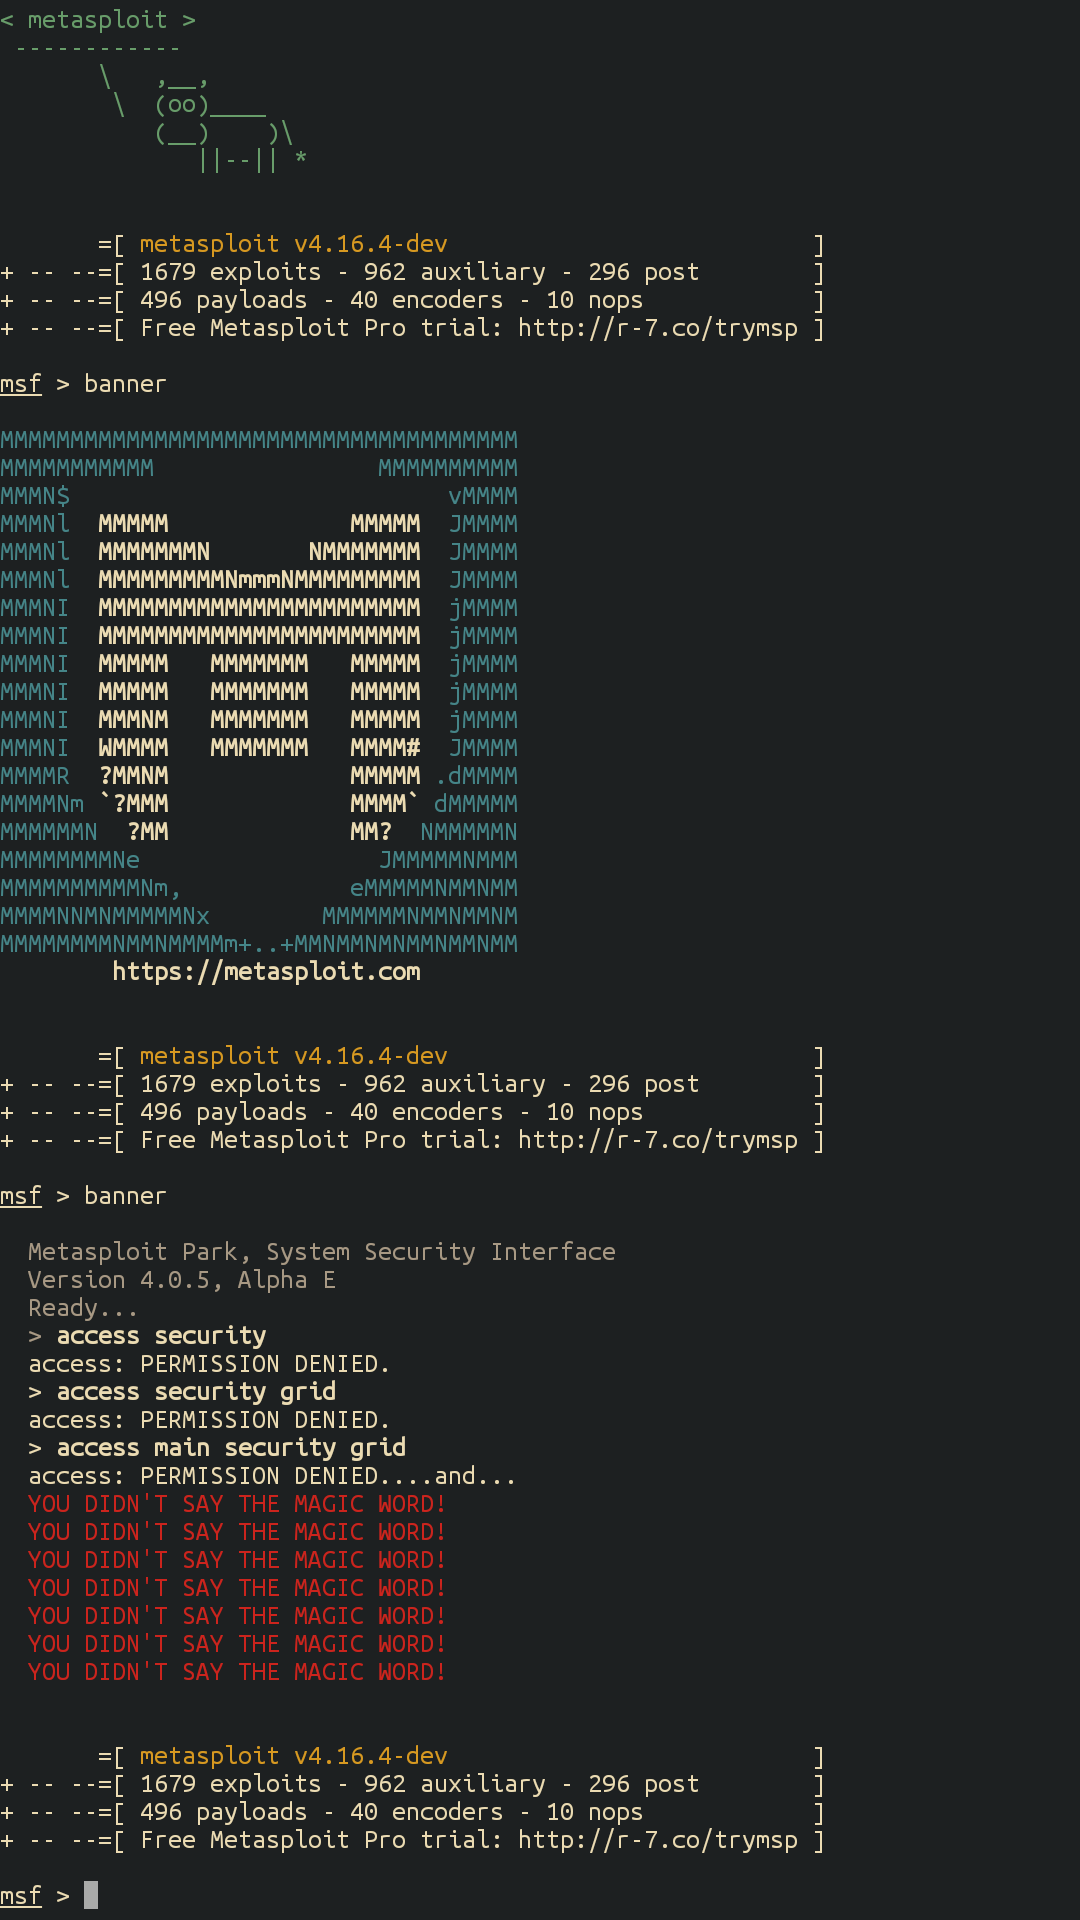 effectiveness of the metasploit application for penetration testing